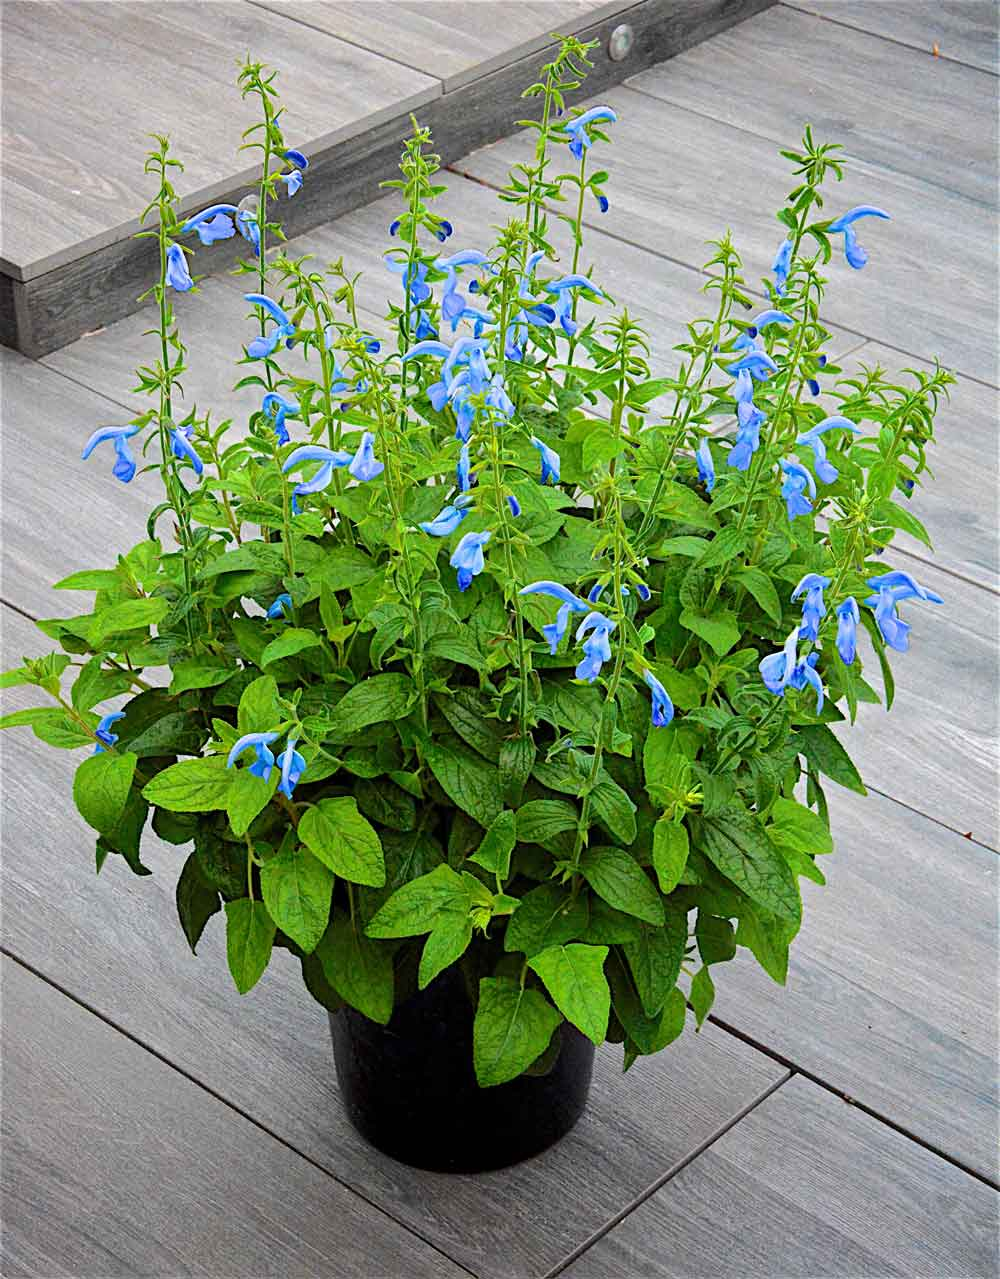 Salvia-Beyond-Blue-in-pot